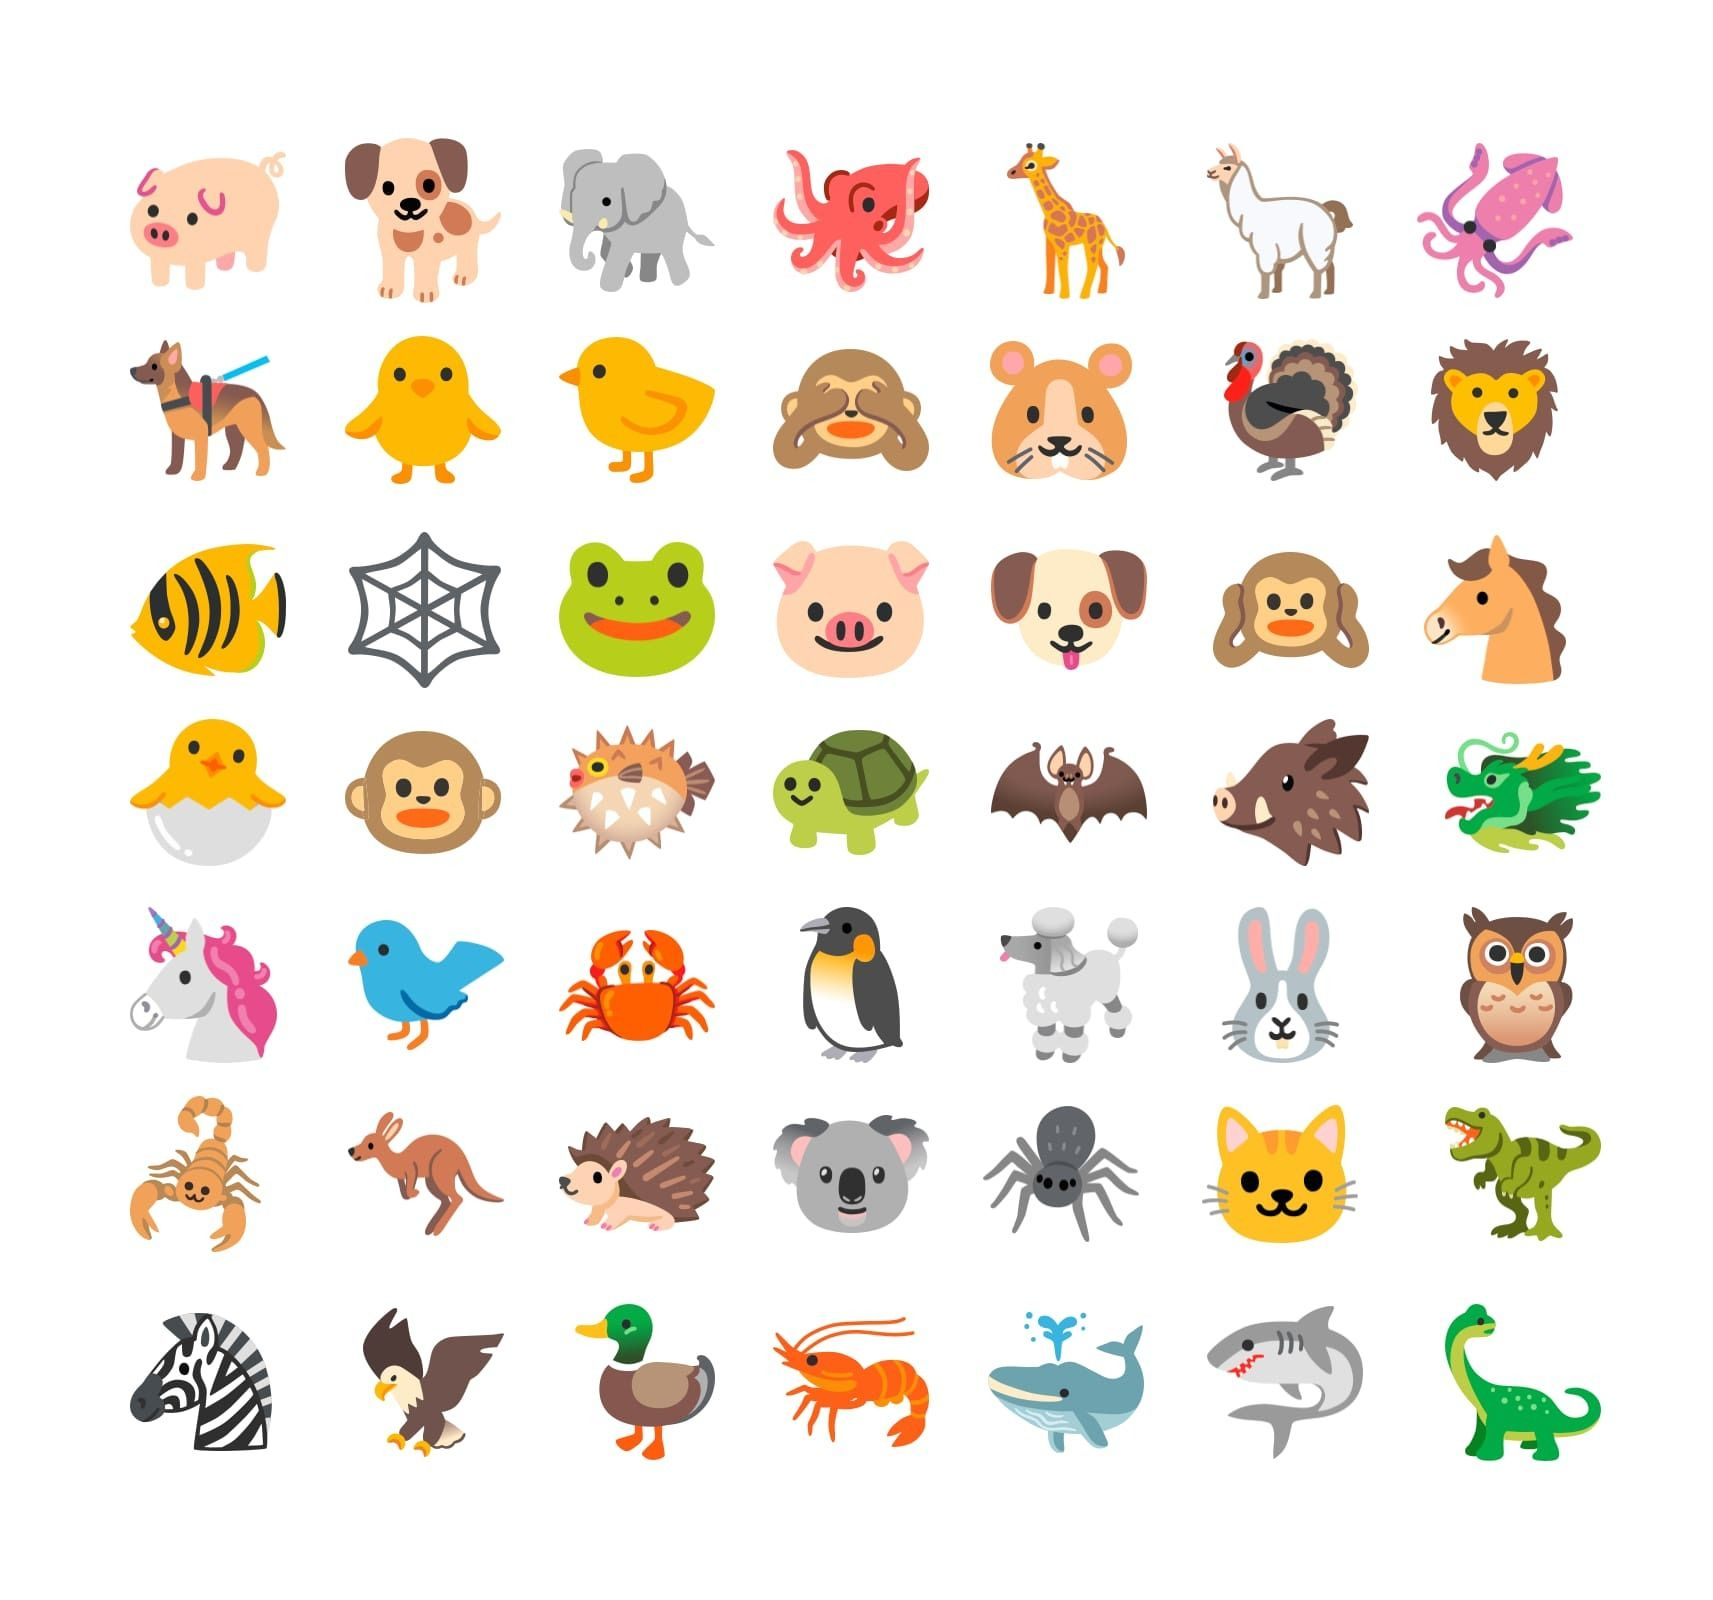 new-animal-emojis-android-11-old-classics